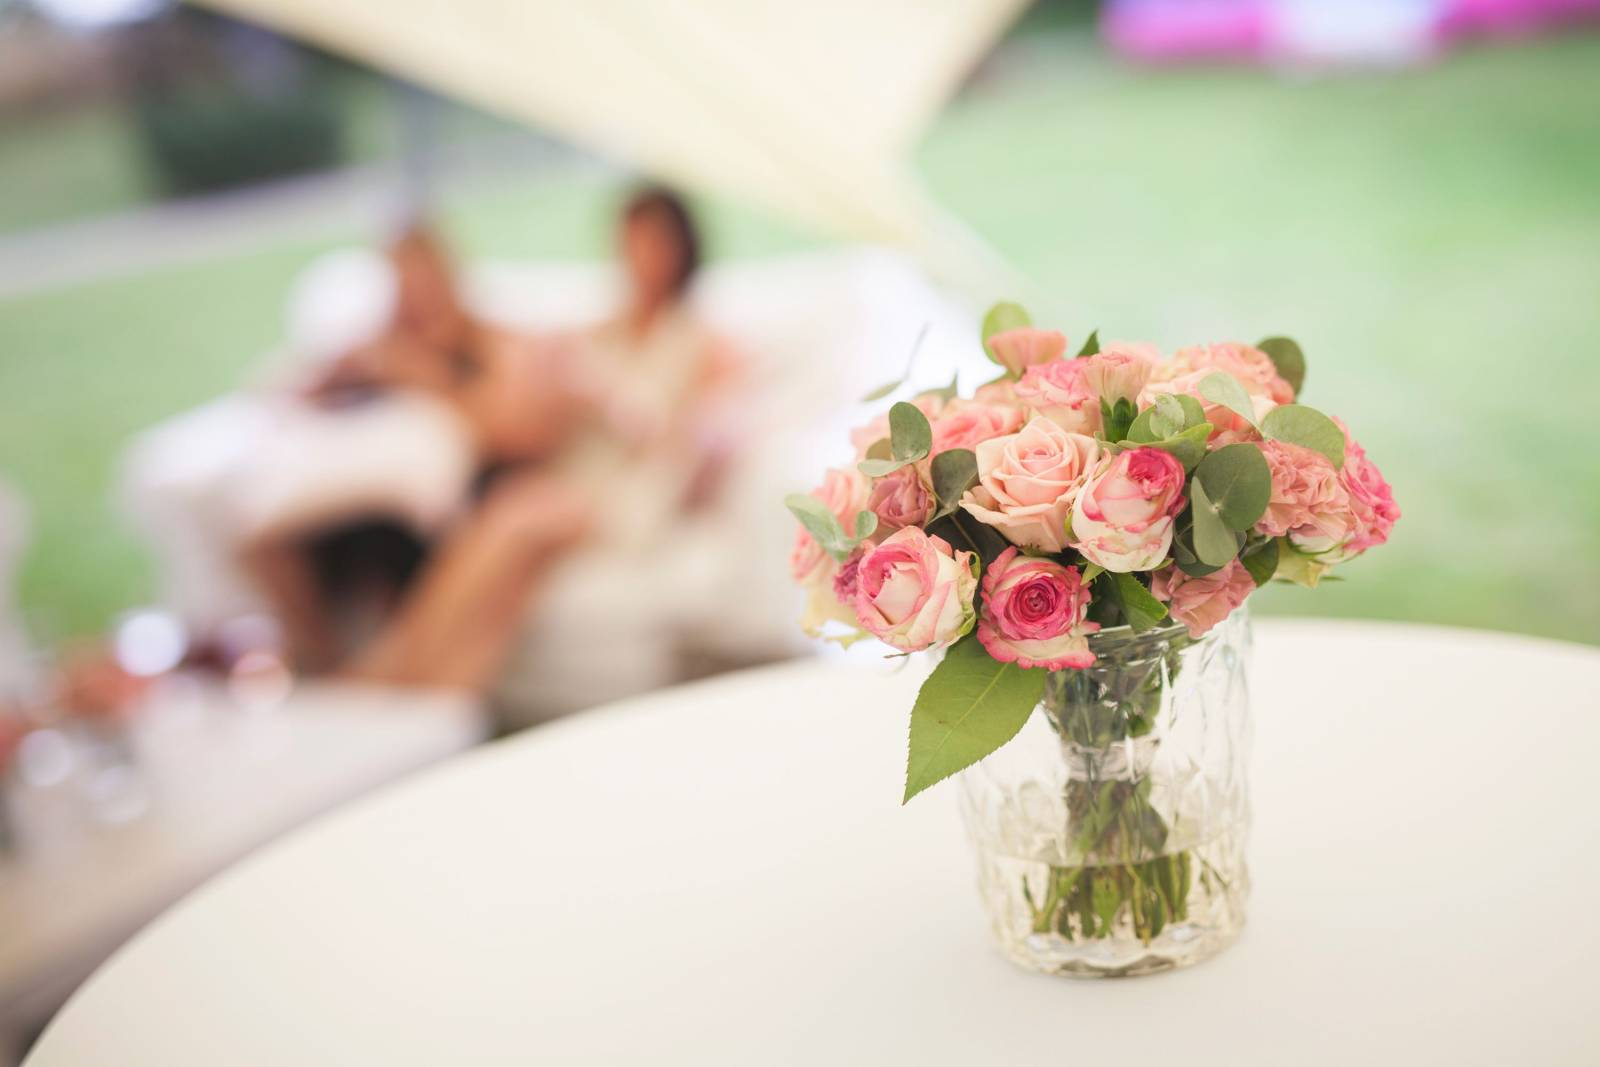 Carpe Diem Bloemen & Decoratie - House of Weddings  - 33